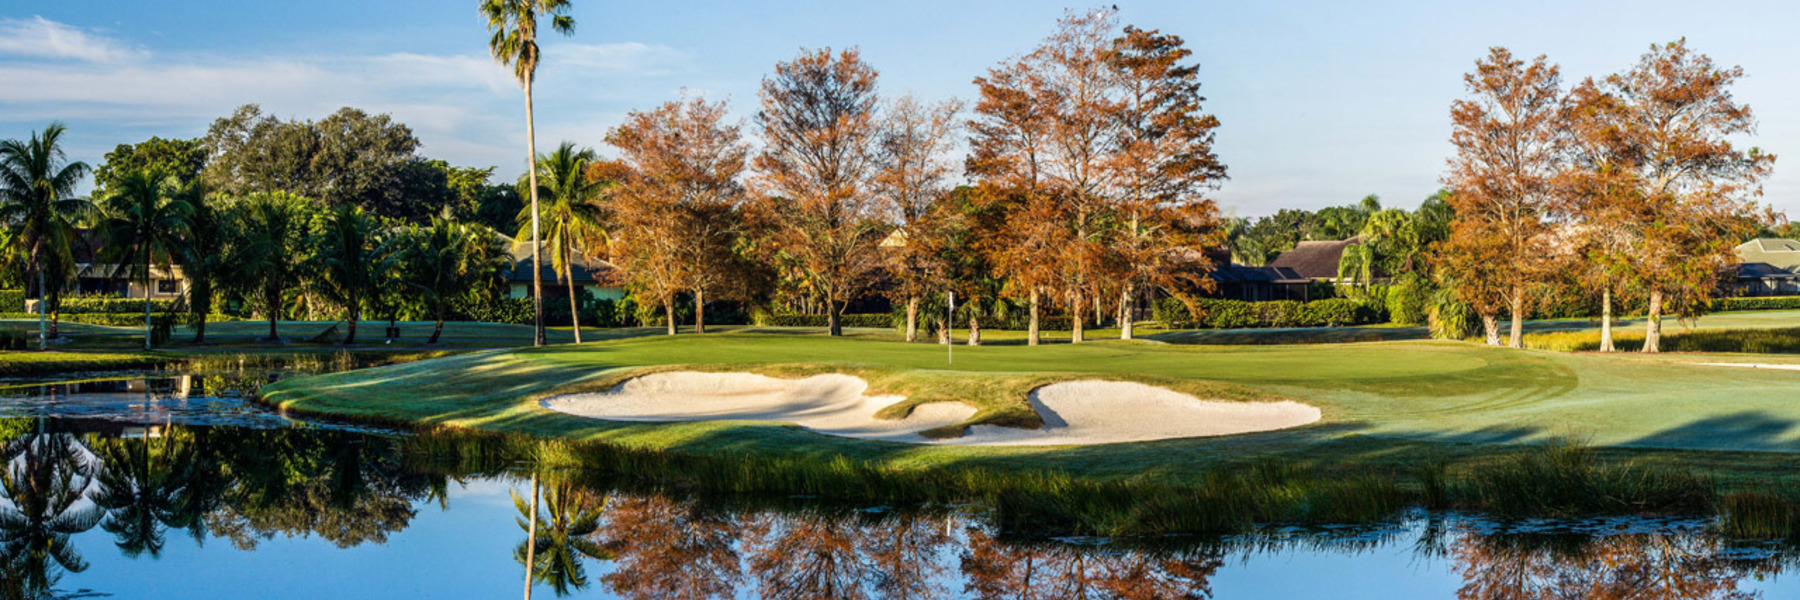 Golf Vacation Package - PGA National Summer Escape Unlimited Daily Golf Getaway from $146 per day!